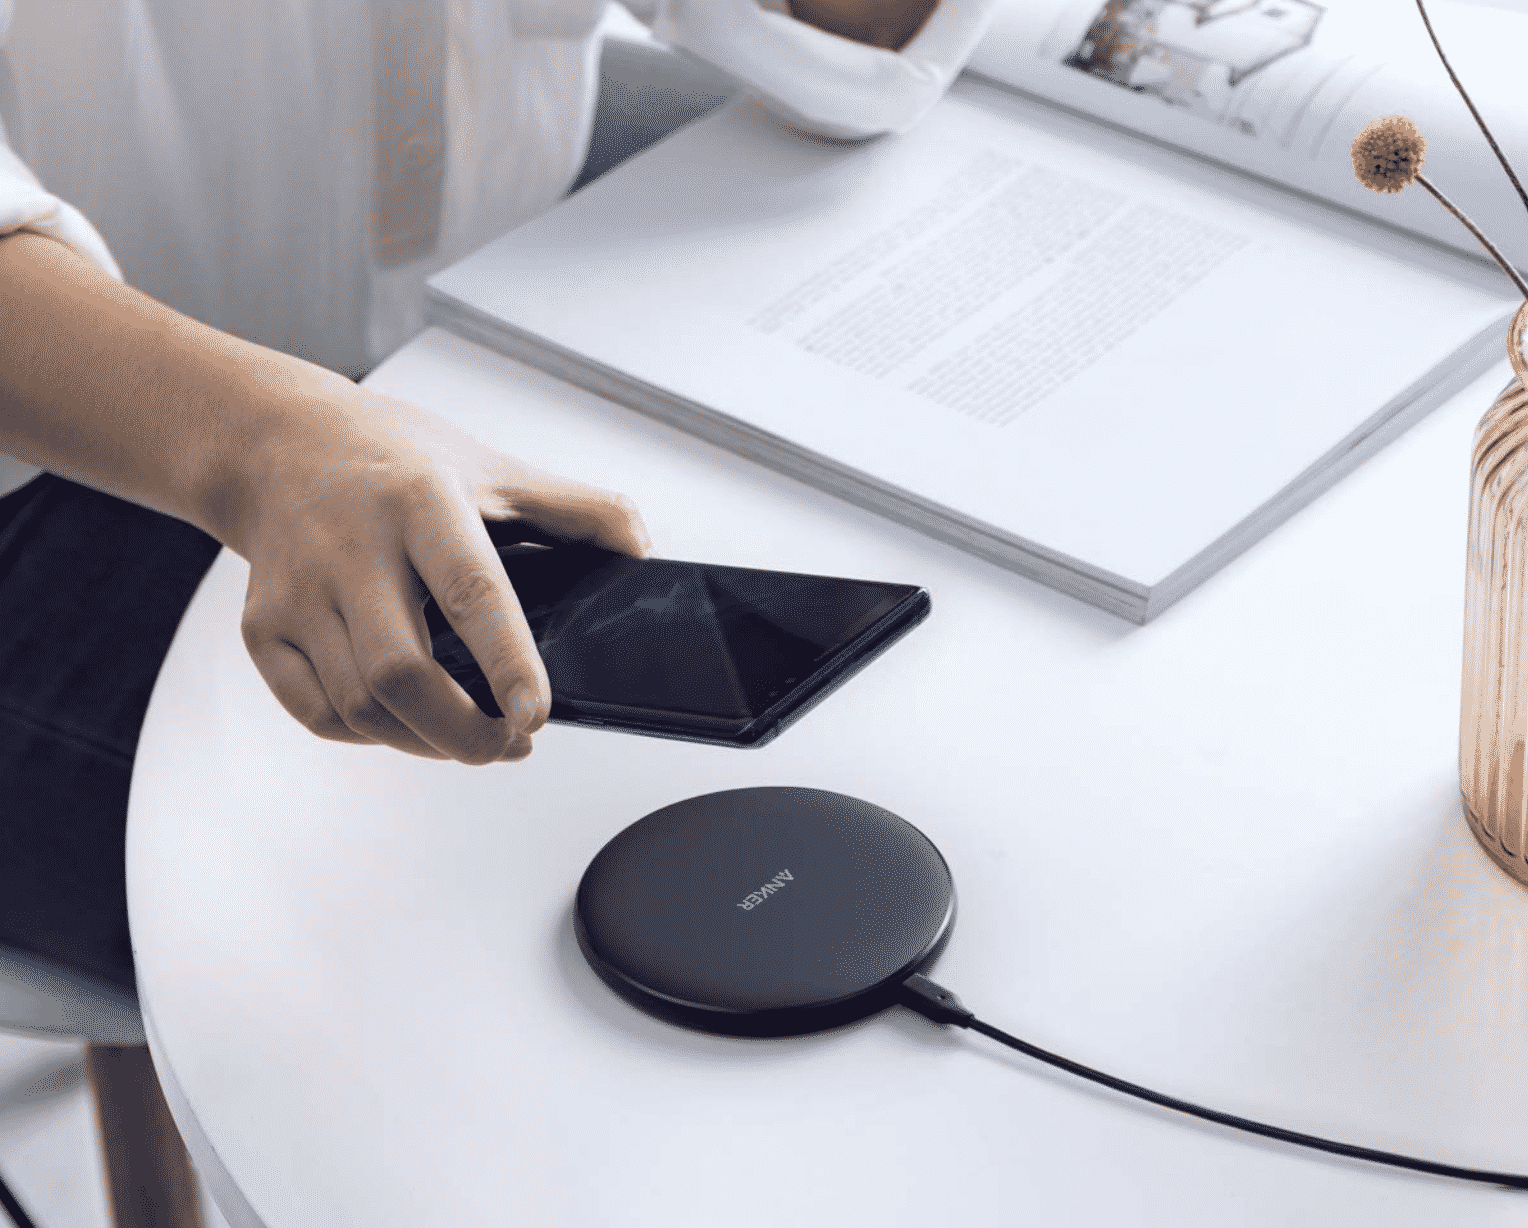 Get Anker's Wireless Qi Pad Charger for Less Than $10